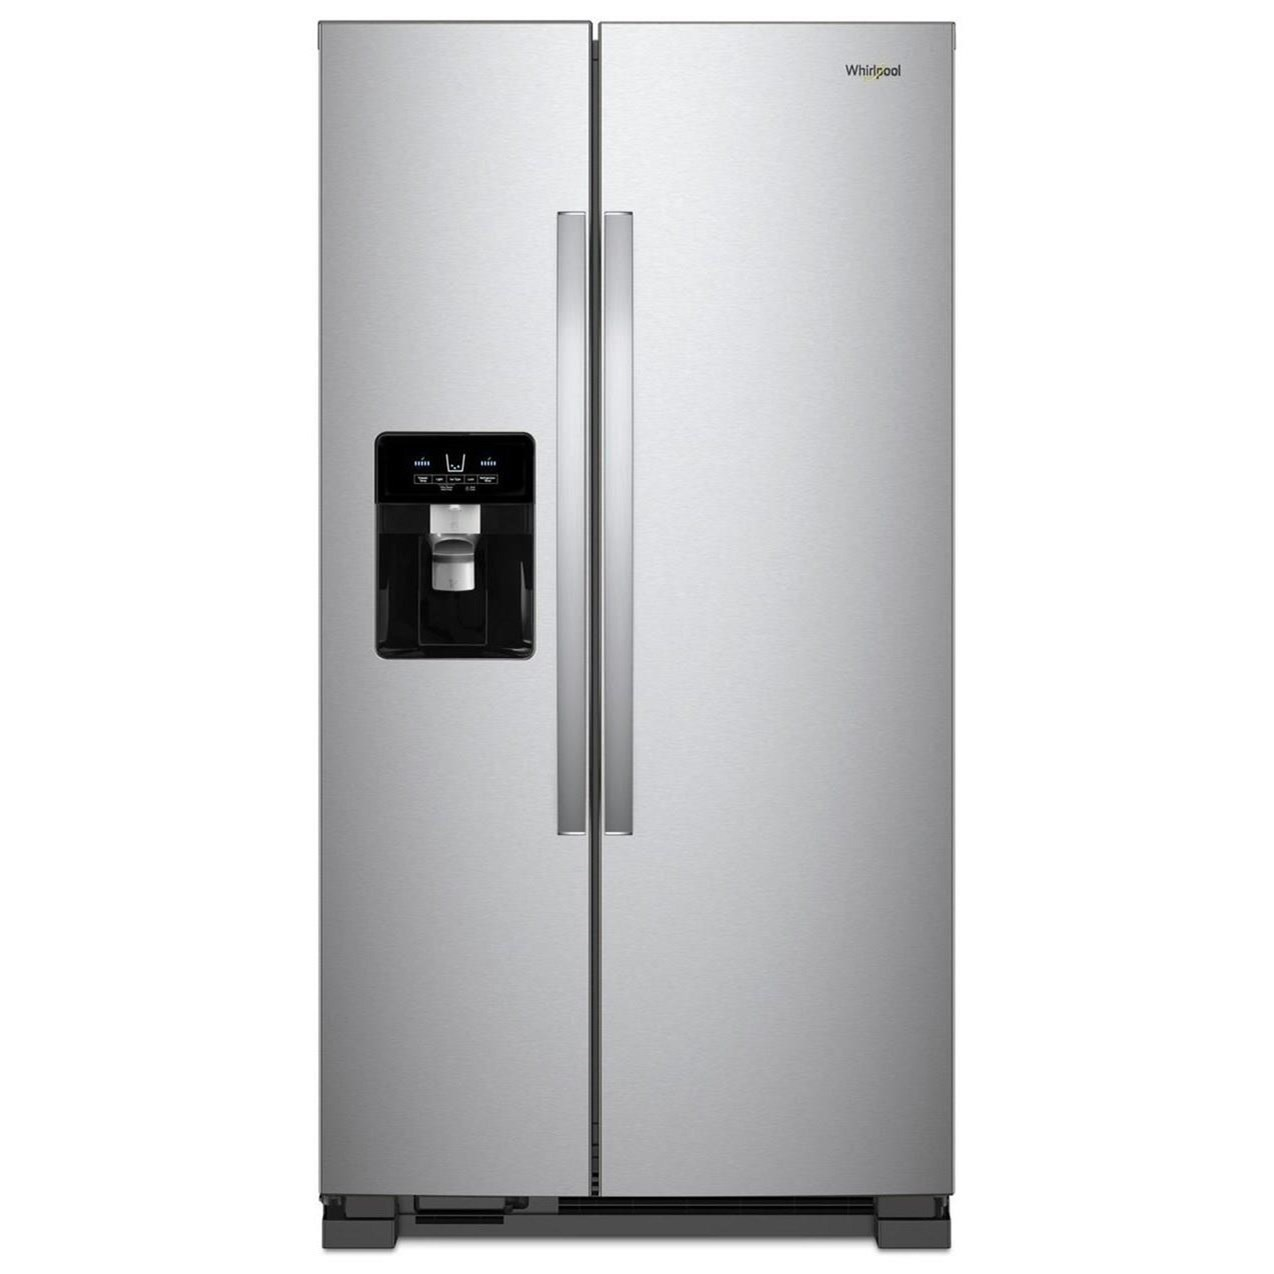 Whirlpool 36 inch wide side by side refrigerator 25 cu ft colder 39 s furniture and appliance - Whirlpool side by side ...